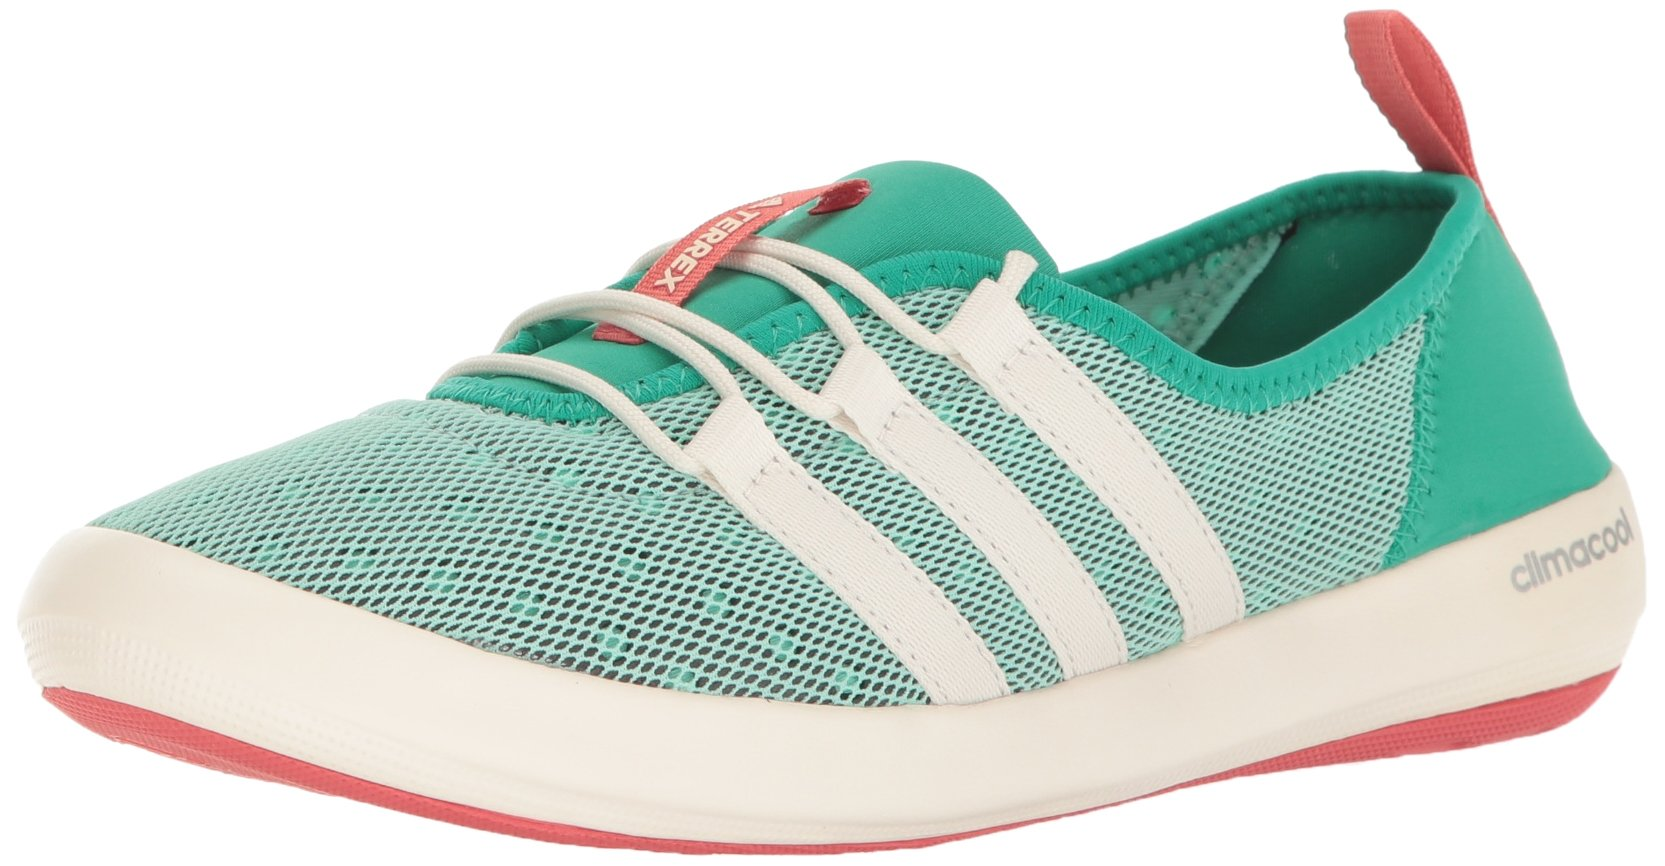 adidas outdoor Women's Terrex Climacool Boat Sleek Water Shoe, Core Green/Chalk White/Tactile Pink, 9 M US by adidas outdoor